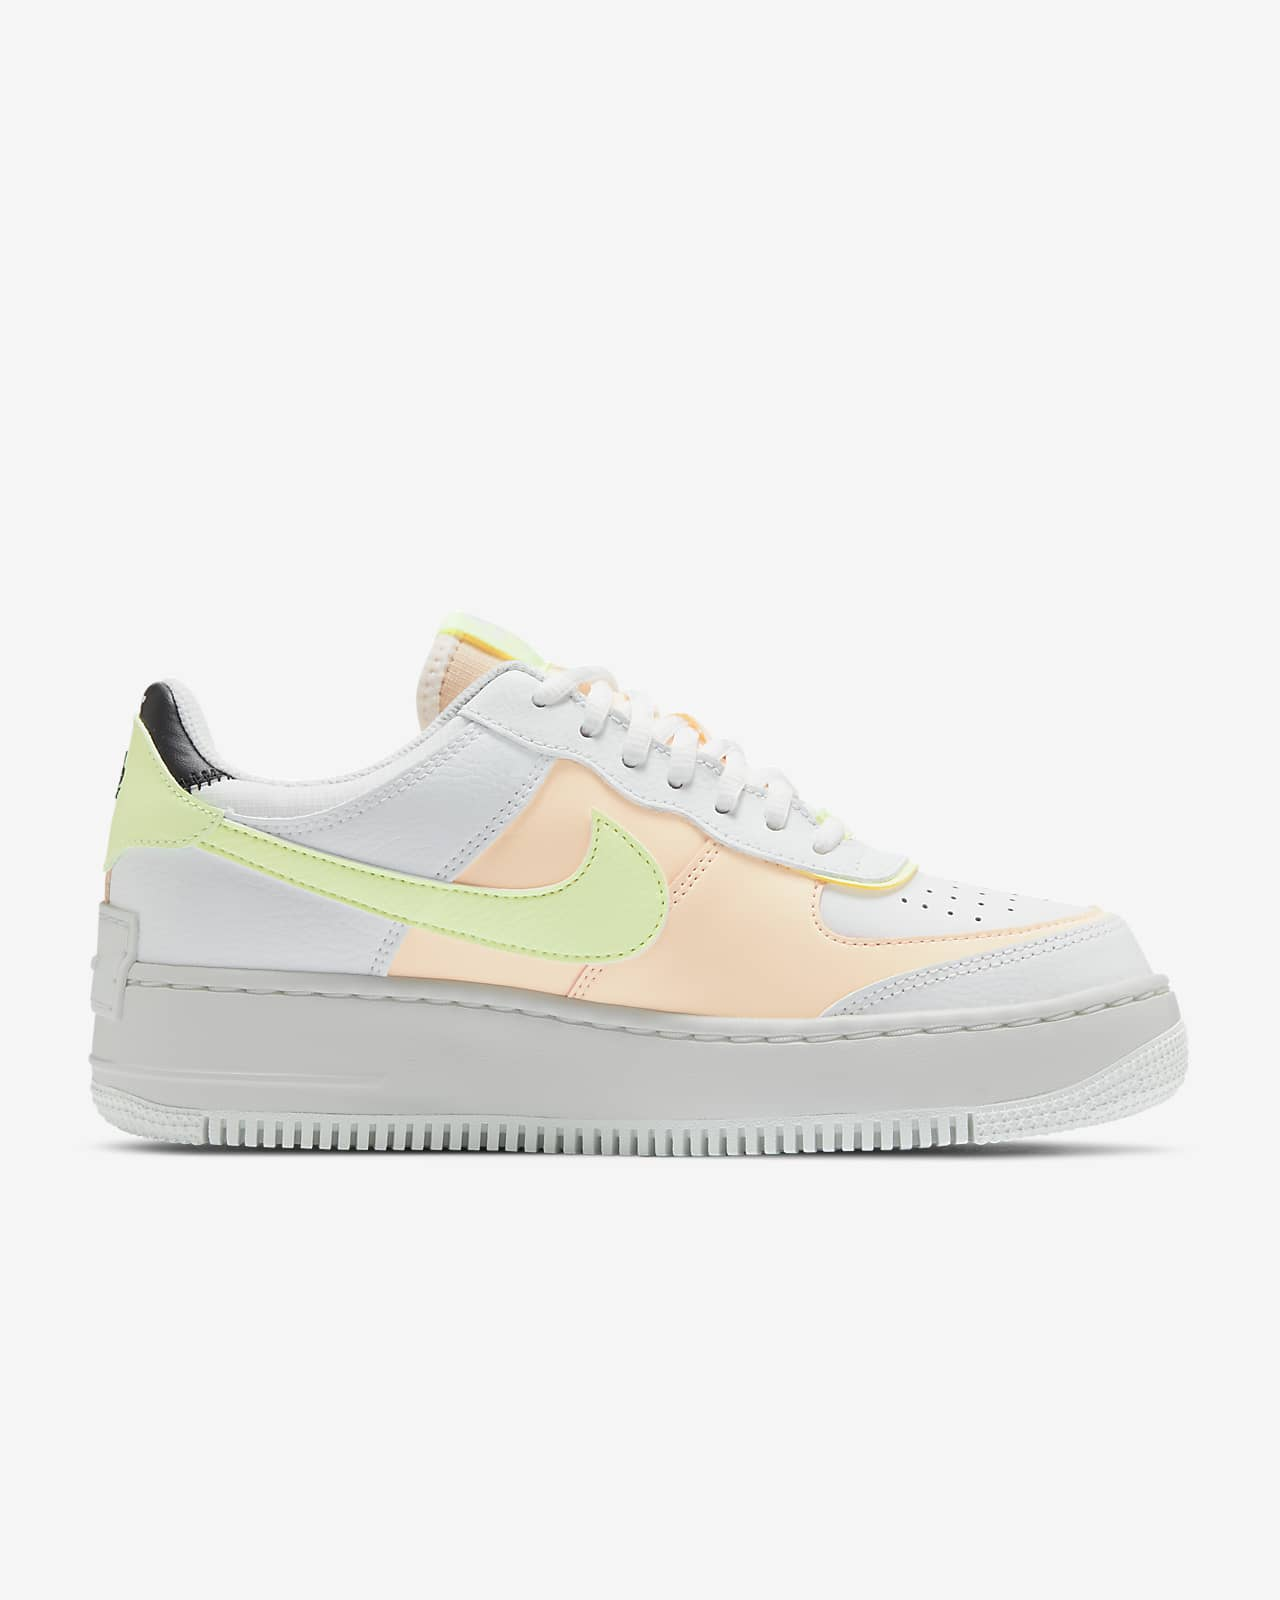 Nike Air Force 1 Shadow Women S Shoe Nike Sg Layered pieces add rich texture. nike air force 1 shadow women s shoe